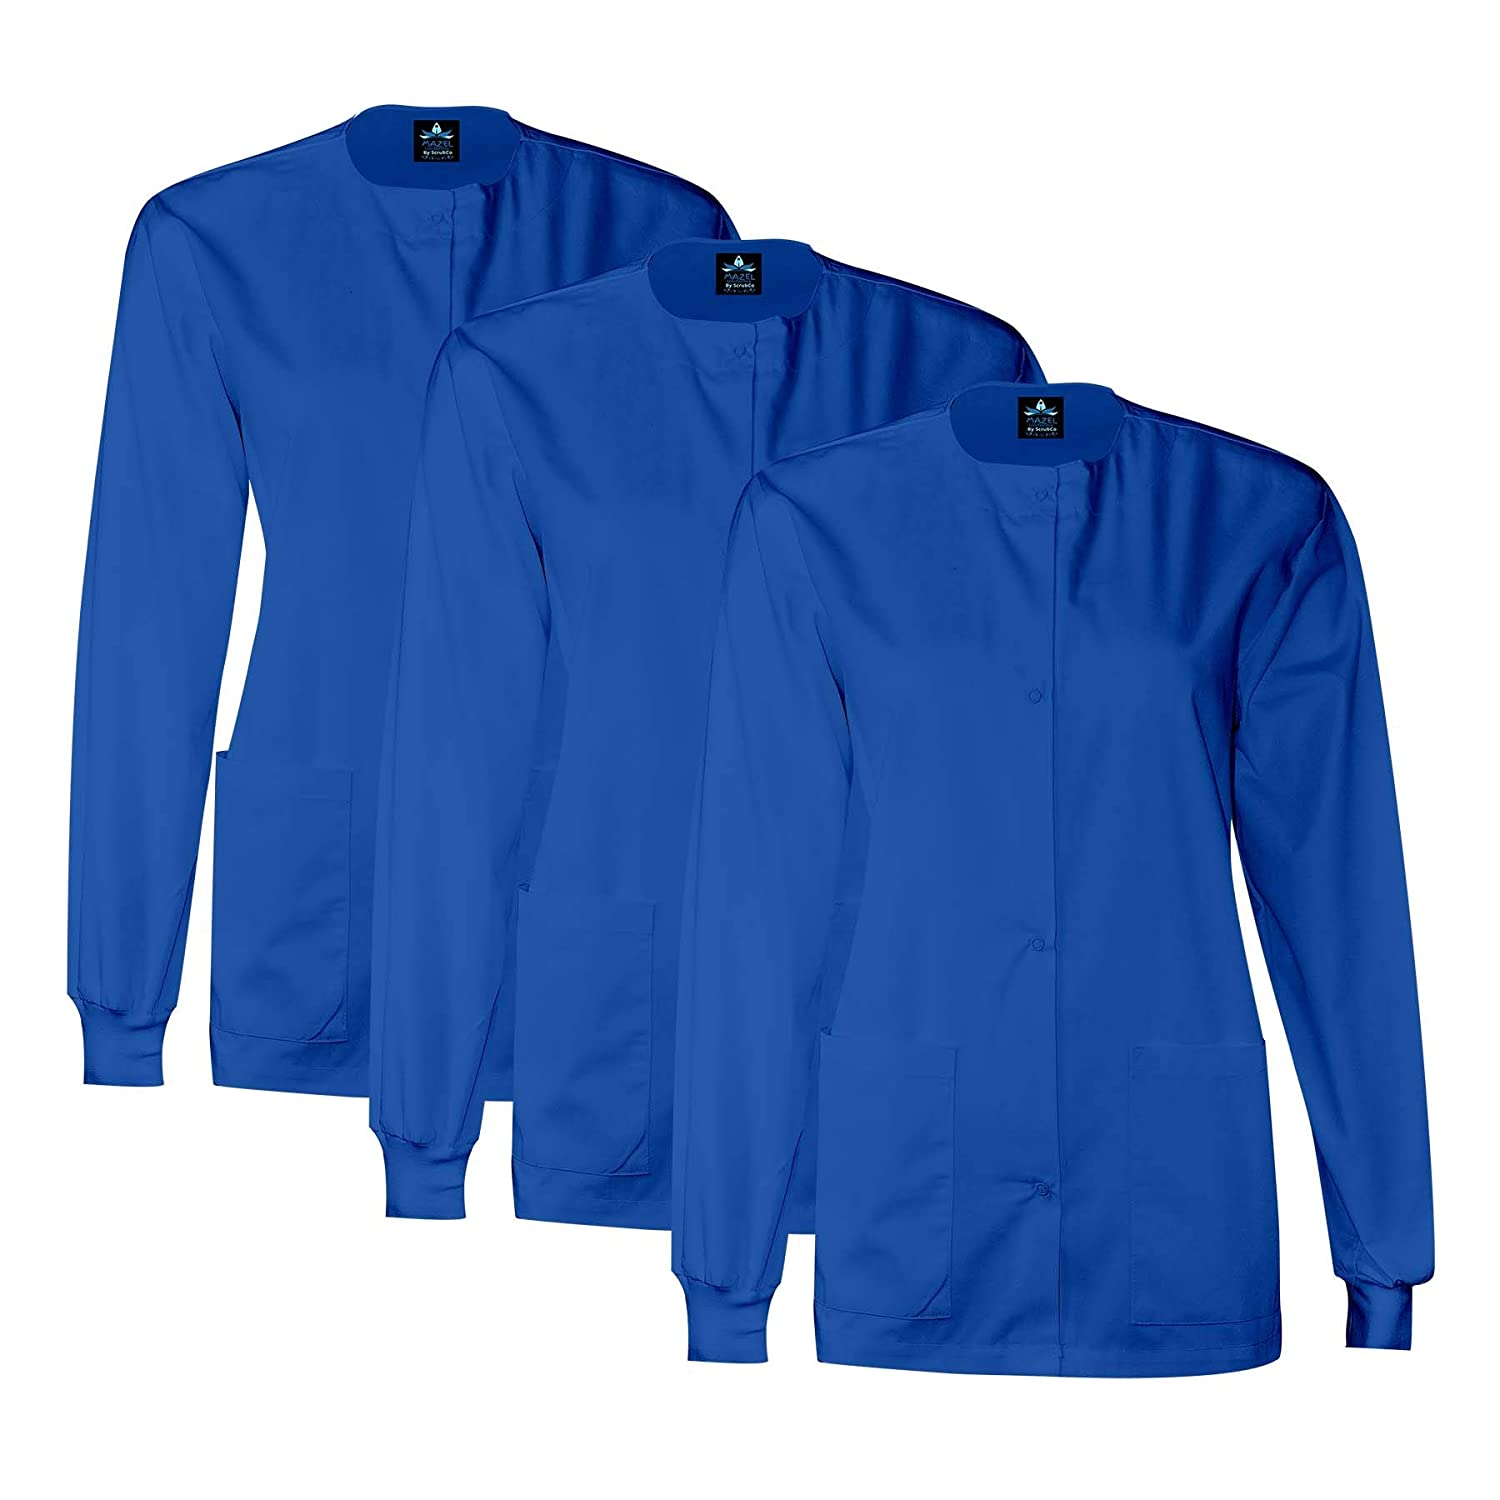 3 Pack Royal bluee MAZEL UNIFORMS Womens Scrub Jacket Warm UP Jacket with Snaps Many colors